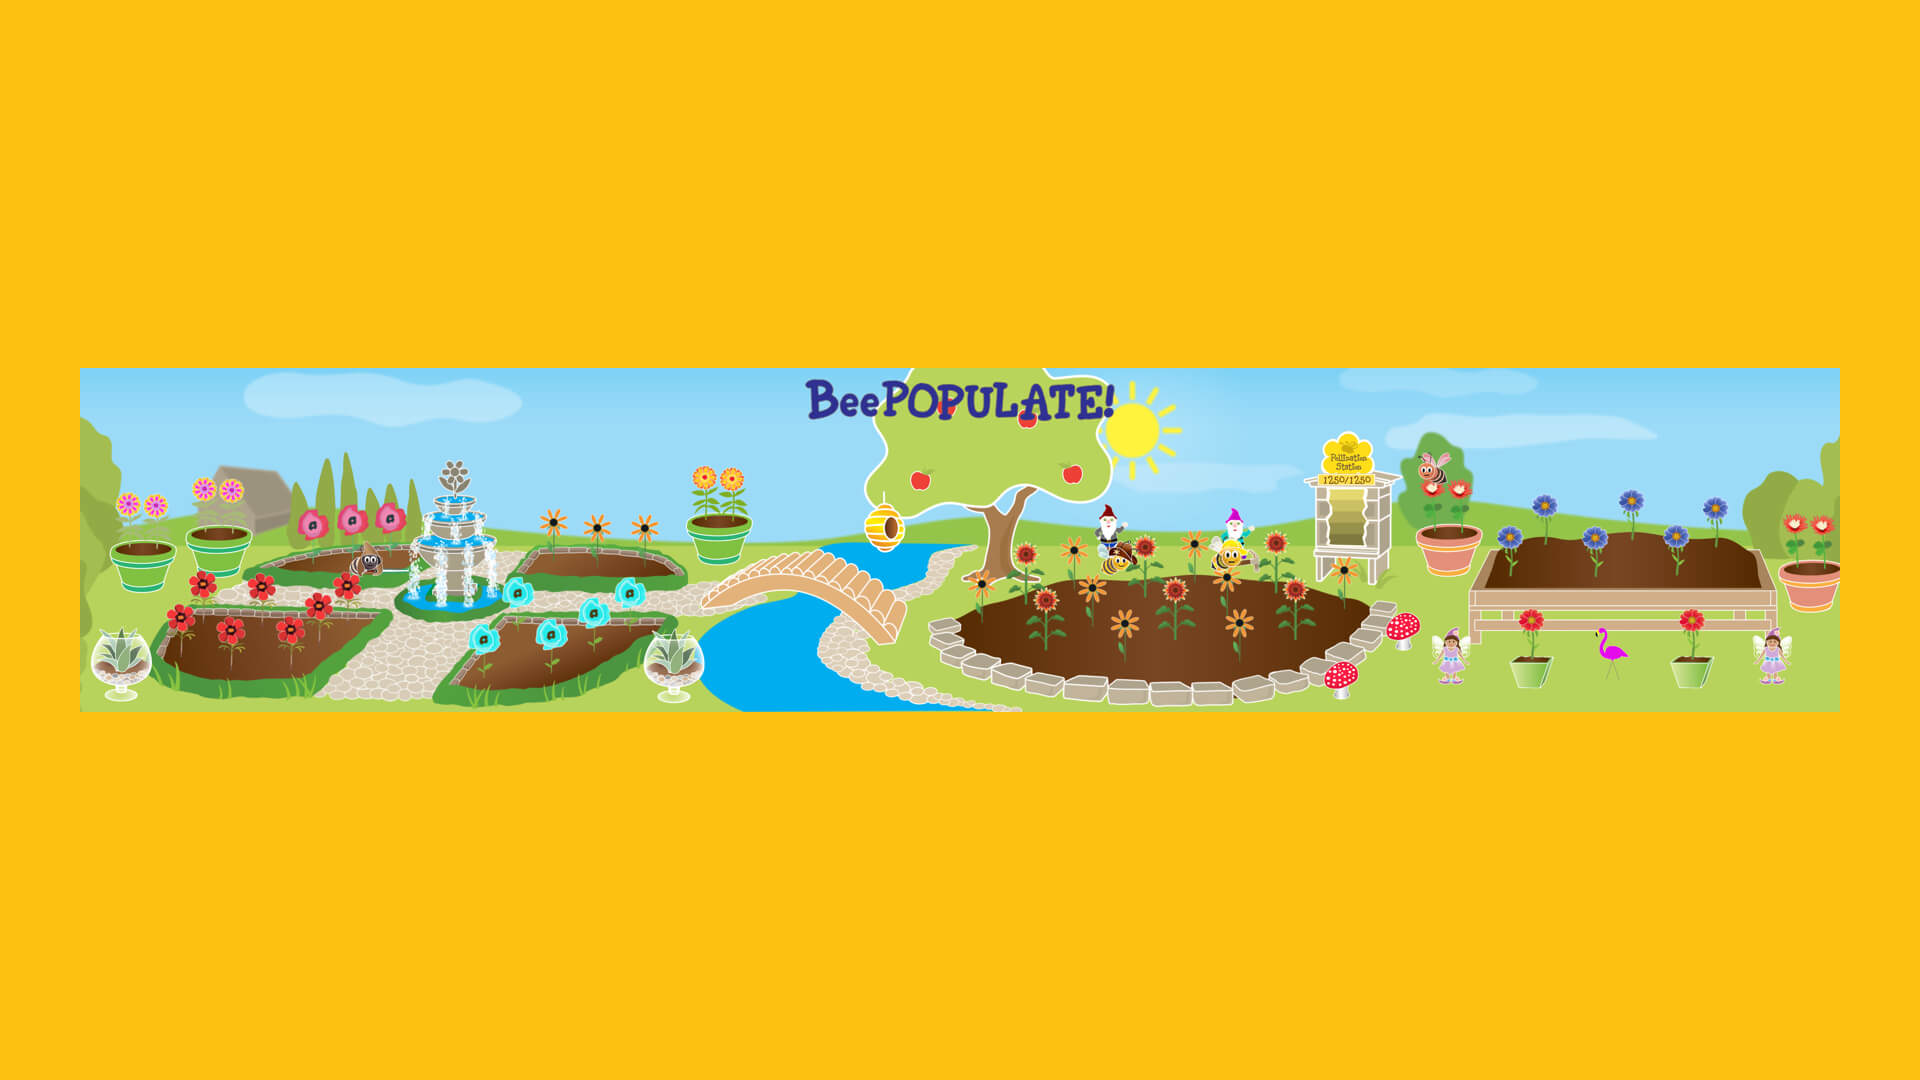 beepopulate-garden-wide